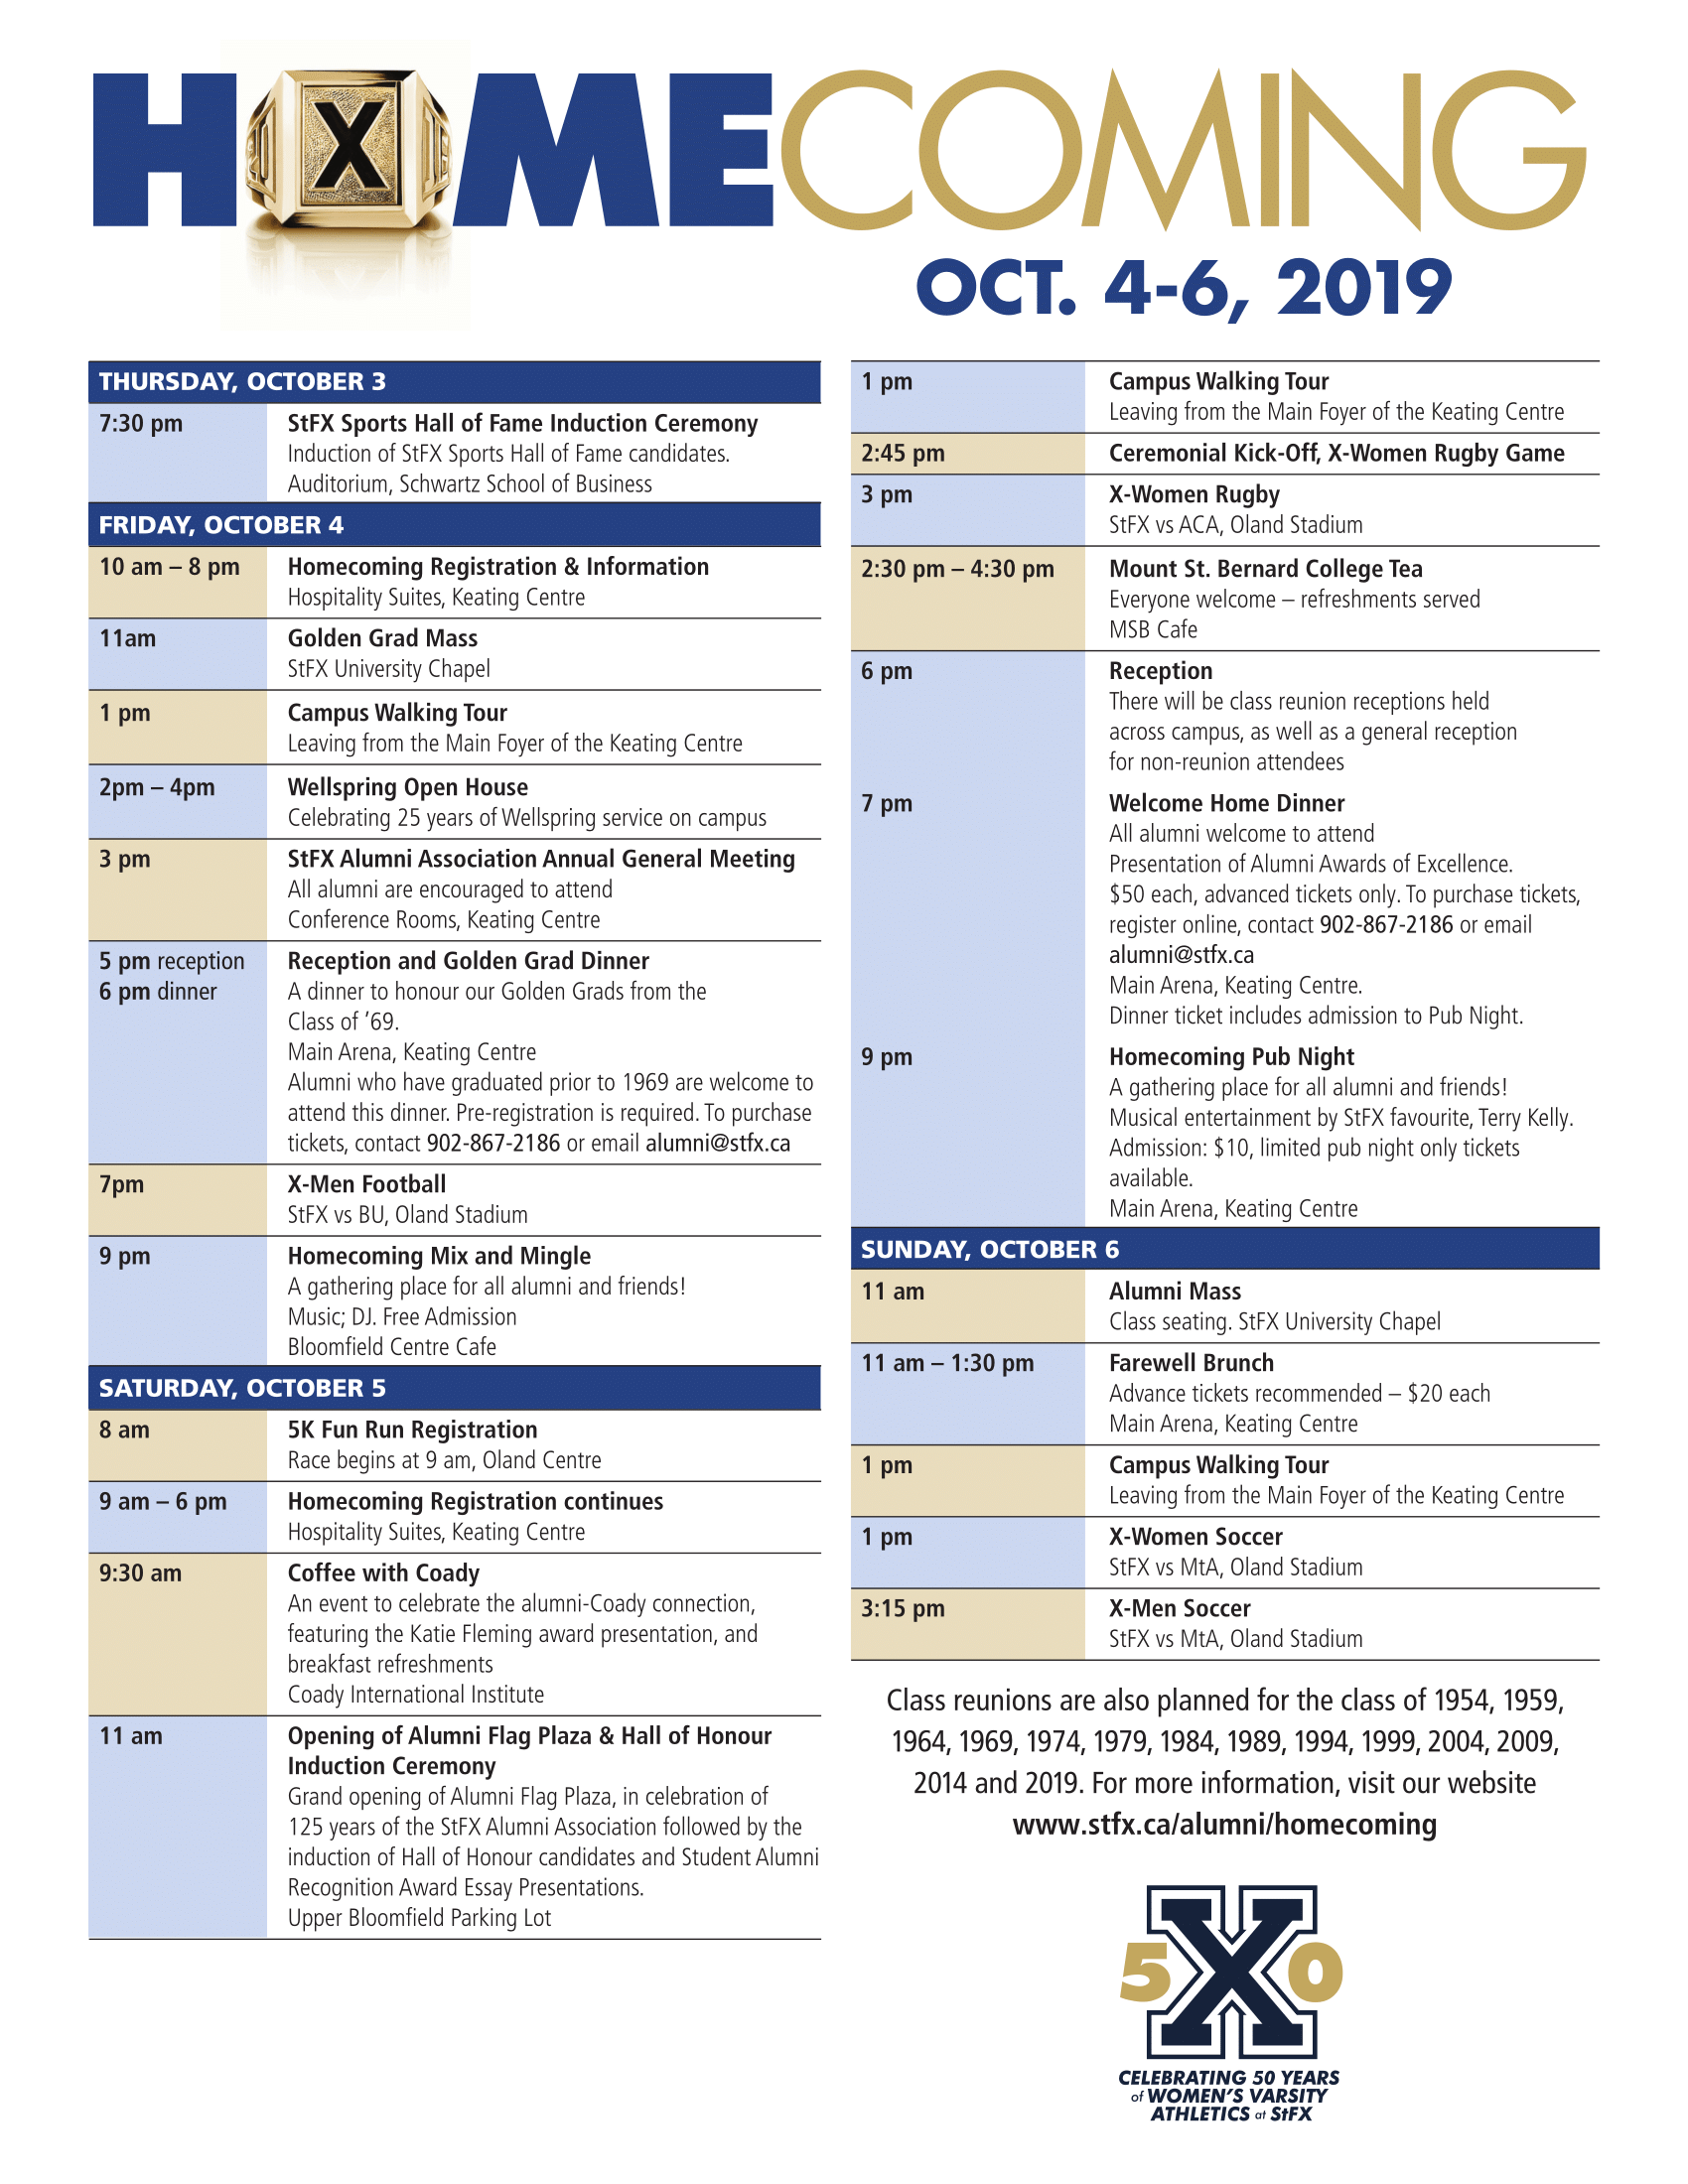 StFX Homecoming 2019 Schedule